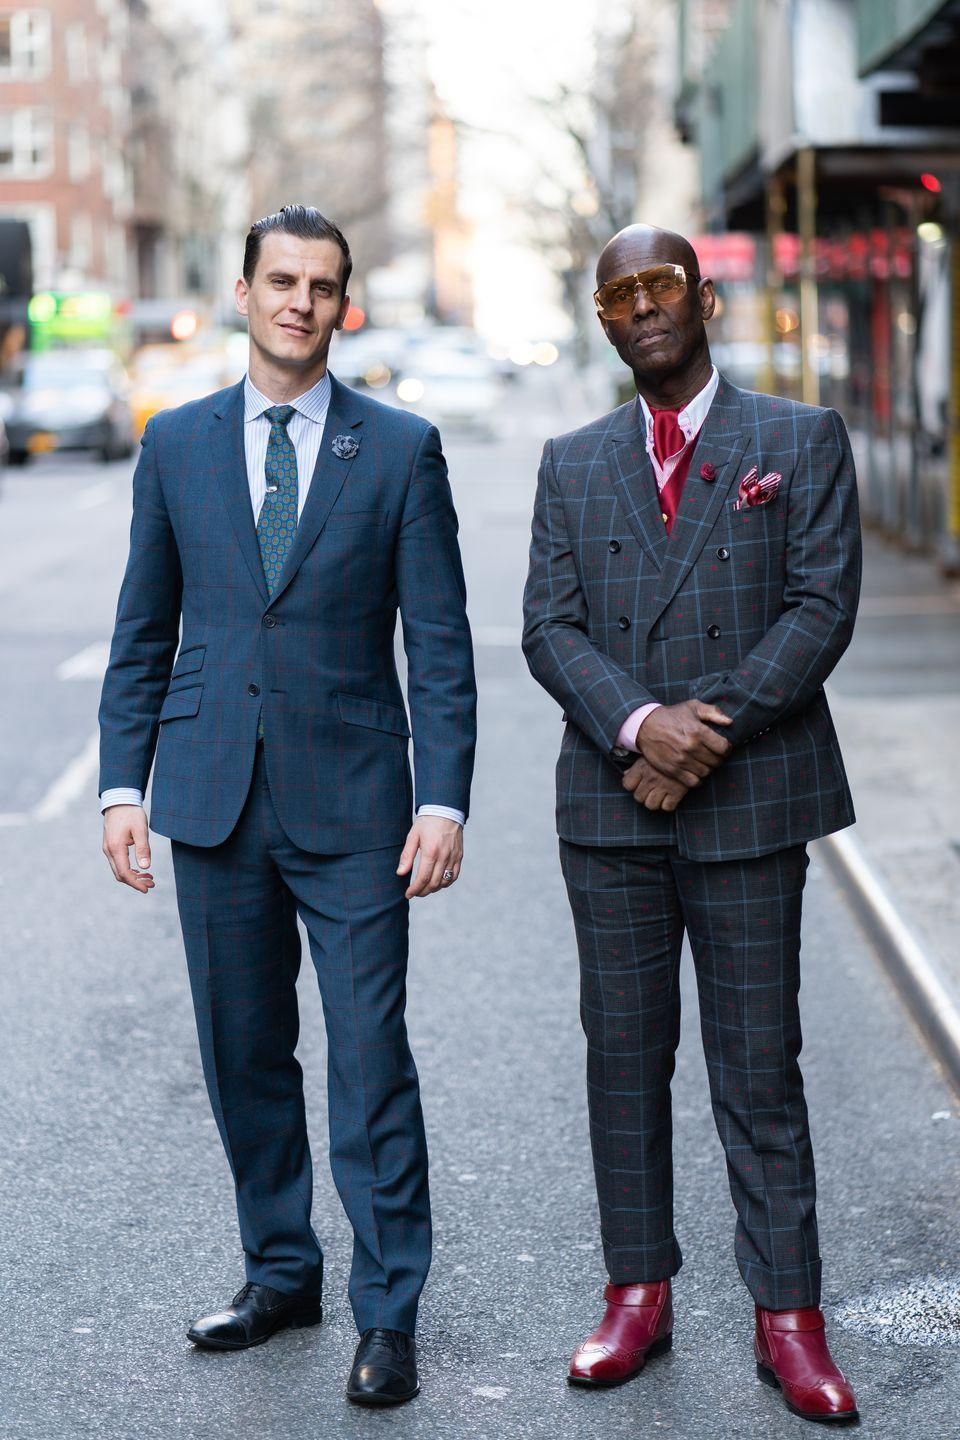 """<p><strong>Brand:</strong> Dapper Dan</p><p>The Harlem designer has his own atelier where he creates his made-to-order designs, which are practically synonymous with the hip-hop stars of the '80s and '90s. He's known for reworking designer logos into his clothes, and has collaborated with Gucci. He even has a <a href=""""https://www.penguinrandomhouse.com/books/567498/dapper-dan-made-in-harlem-by-daniel-r-day/"""" rel=""""nofollow noopener"""" target=""""_blank"""" data-ylk=""""slk:memoir"""" class=""""link rapid-noclick-resp"""">memoir</a> out where he talks about his experience as Black designer and how he made his now-famous store on 125th Street. </p>"""